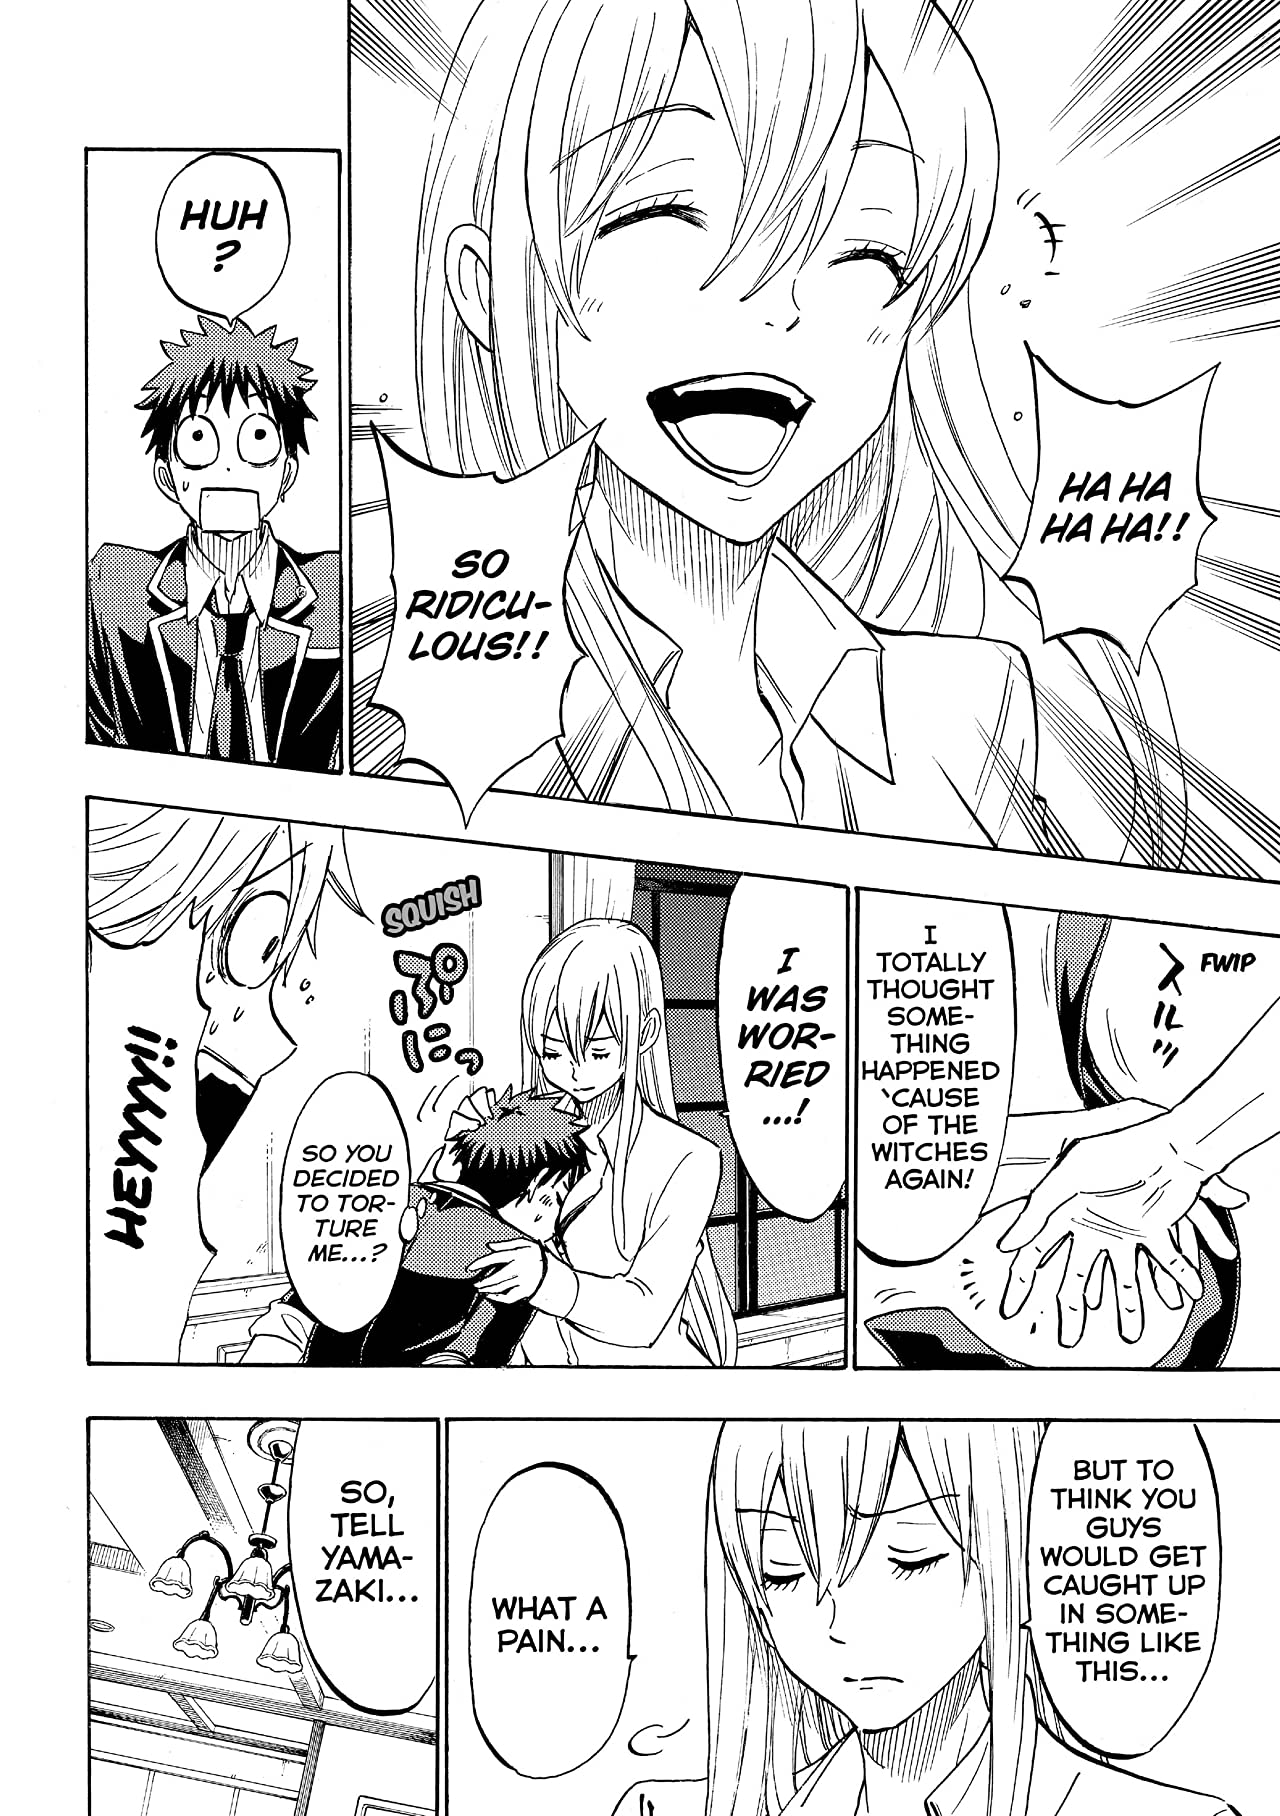 Yamada-kun and the Seven Witches #181